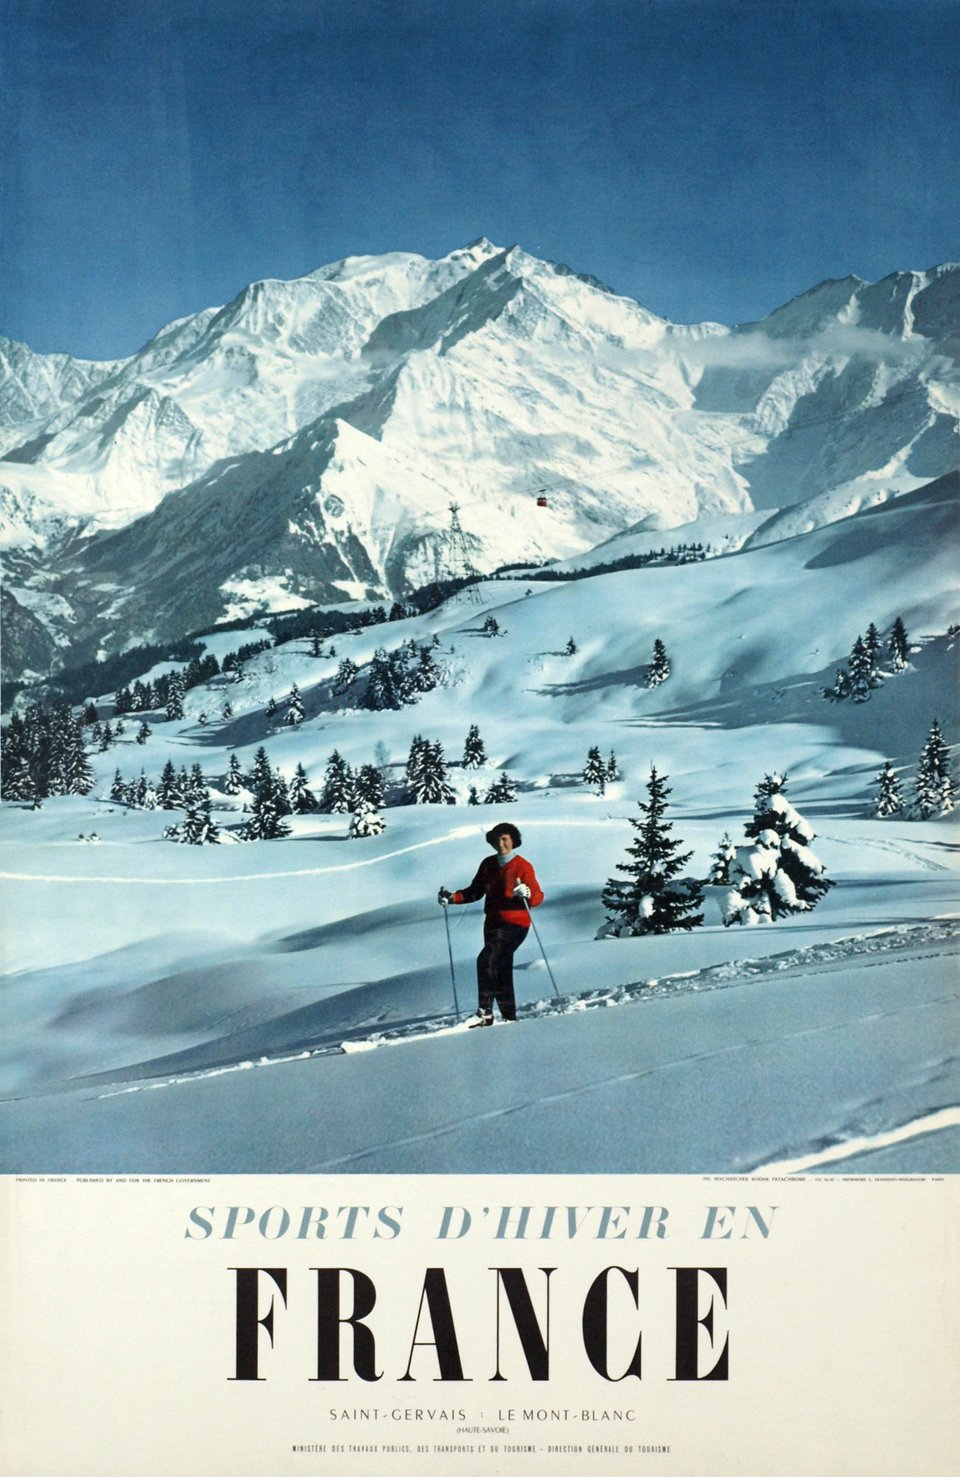 Sports d'hiver en France, Saint-Gervais, le Mont-Blanc – Affiche ancienne – Karl MACHATSCHEK – 1956